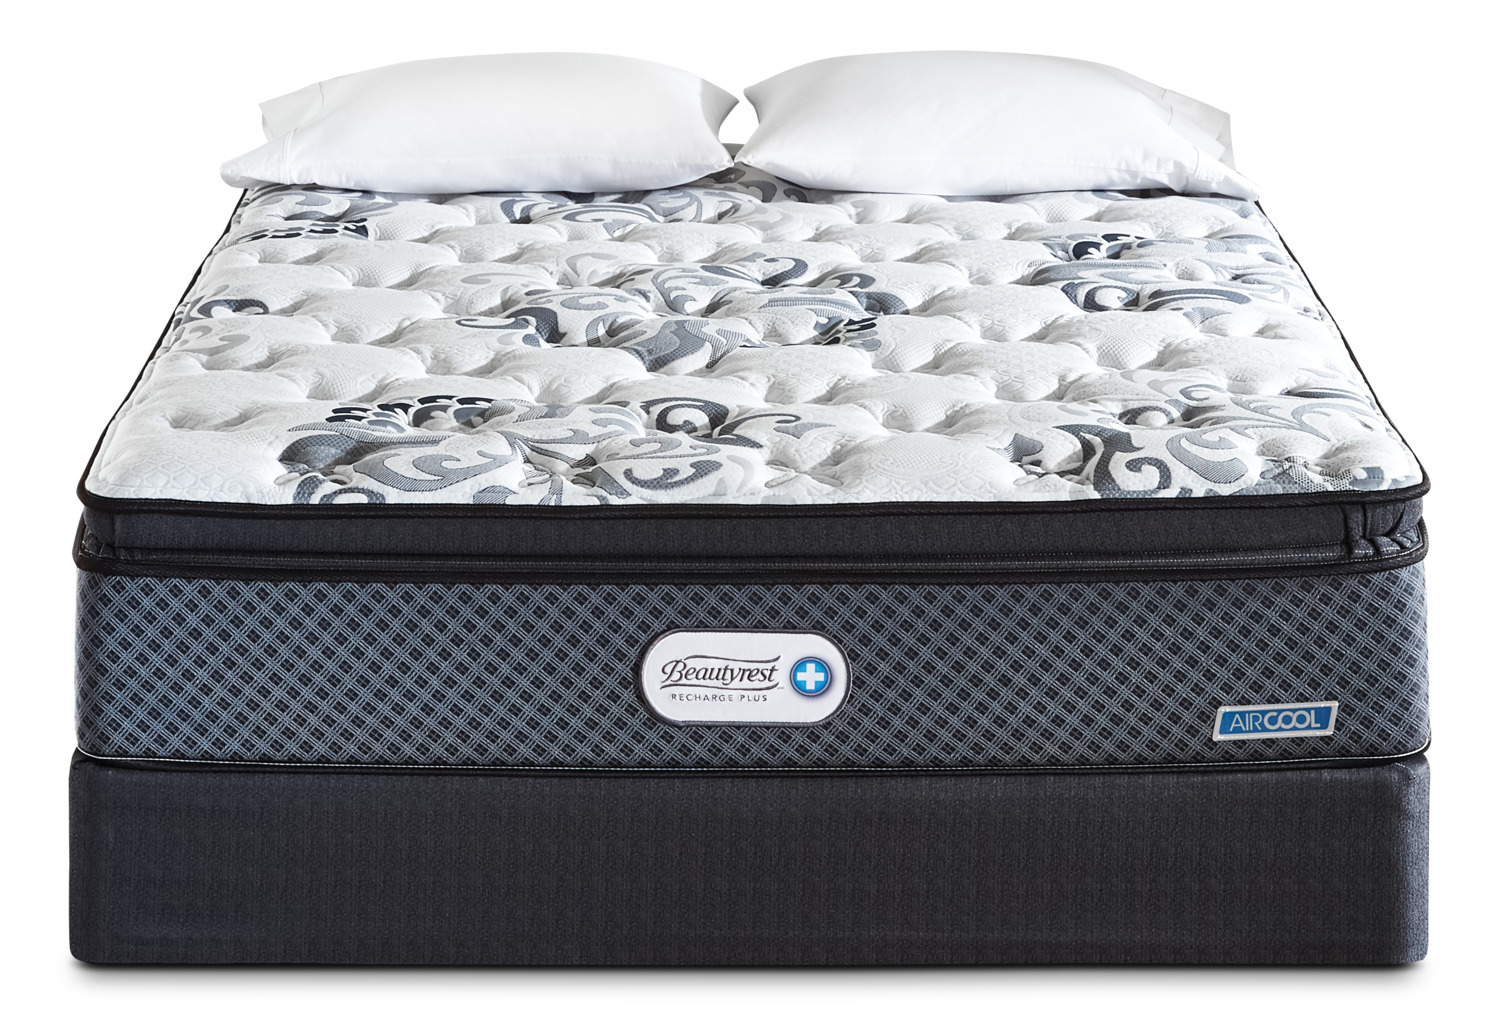 simmons beautyrest ultra trenton firm twin mattress and boxs